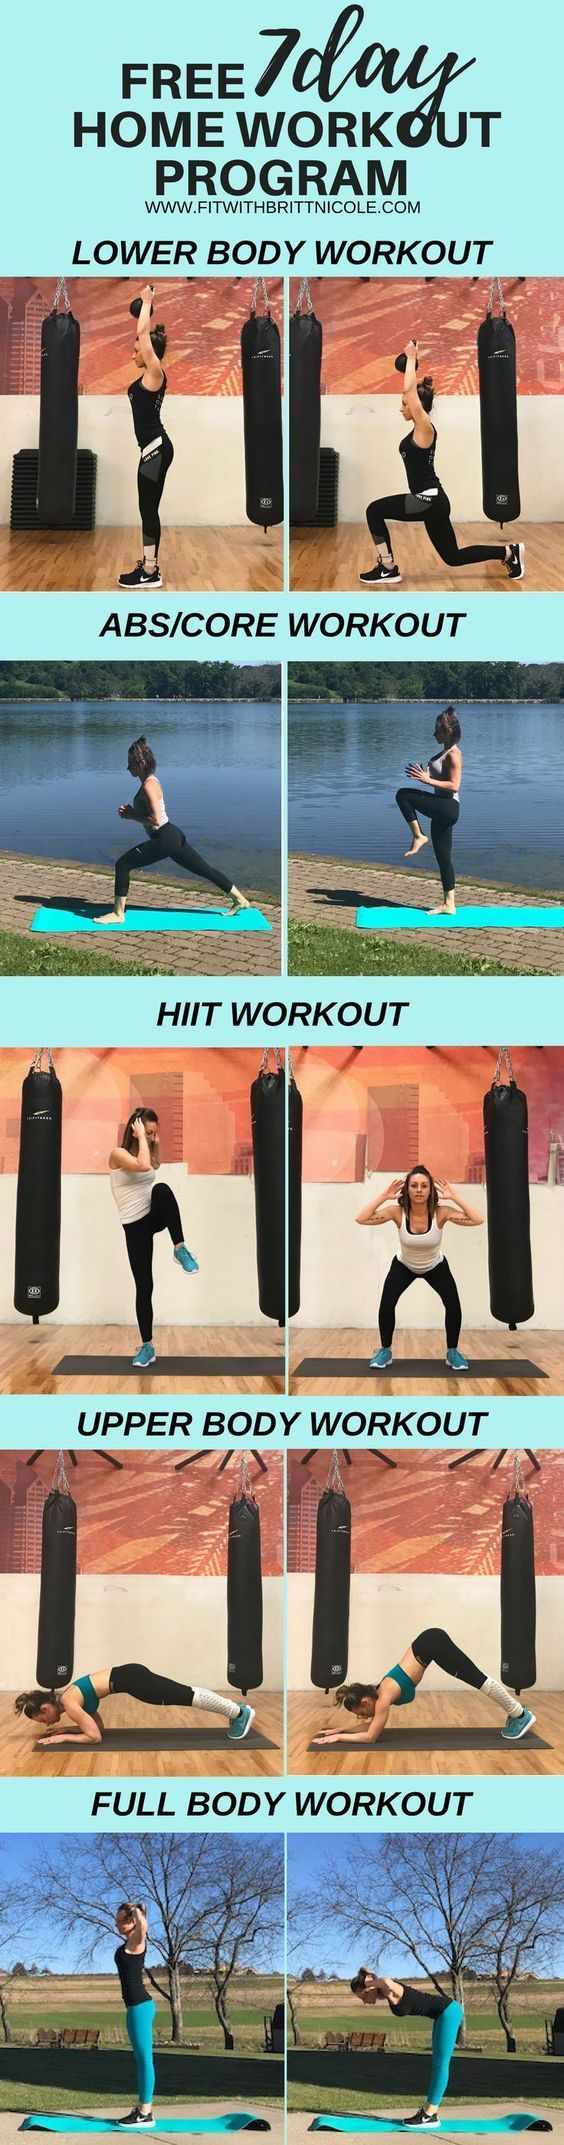 Click through to get your FREE 7 Day Home Workout Program! This includes a workout schedule for 1 full week structured workouts that are easy to follow and pictures of each exercise. Home Workout | HIIT Workout | Ab Workout | Core Workout | Lower Body Workout | Legs and Booty | Upper Body Workout | Full Body Workout | Get Fit Fast #homeworkout #bodyweightworkout #healthandfitenss #workoutprogram #weightloss #burnfat